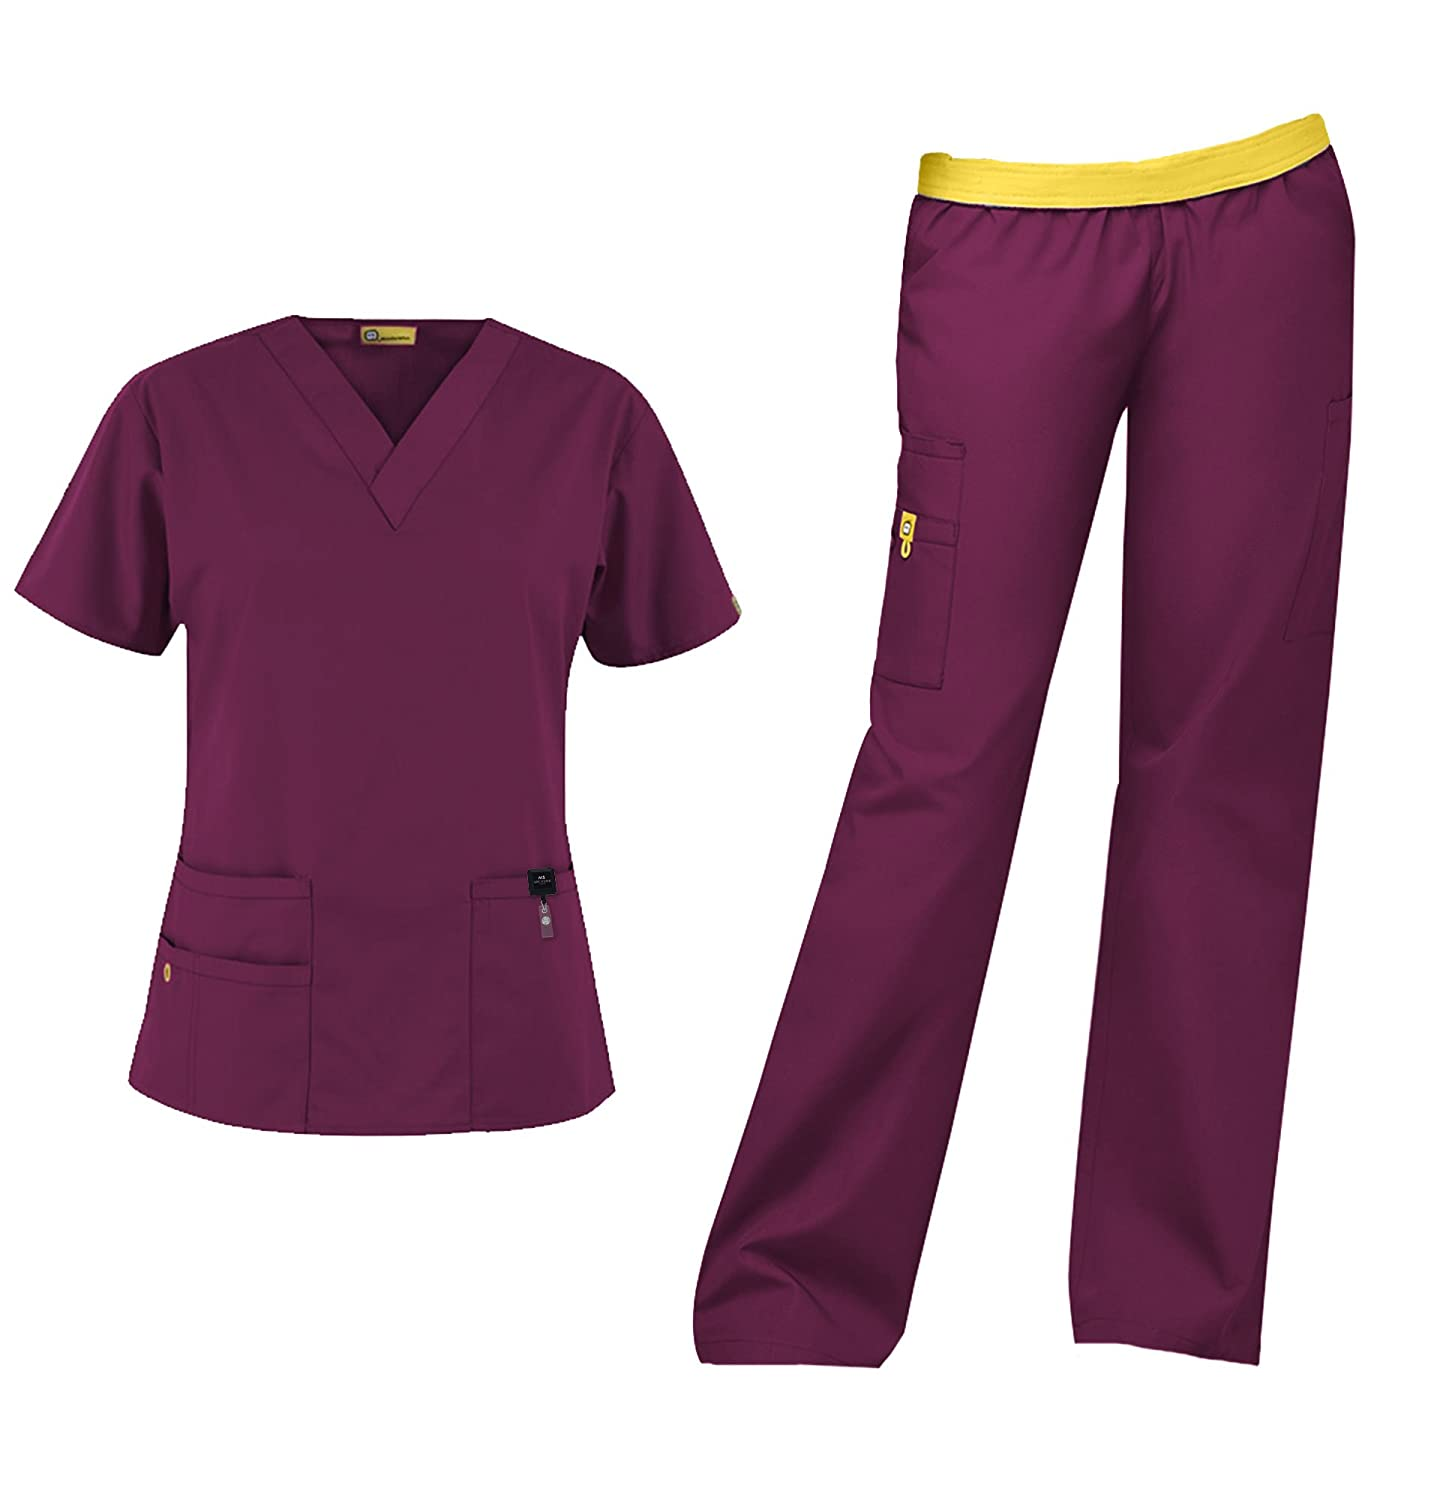 5dc216e16d4 WonderWink Origins Womens Scrub Set Bundle- 6016 Bravo Top /& 5016 Quebec  Cargo Pant